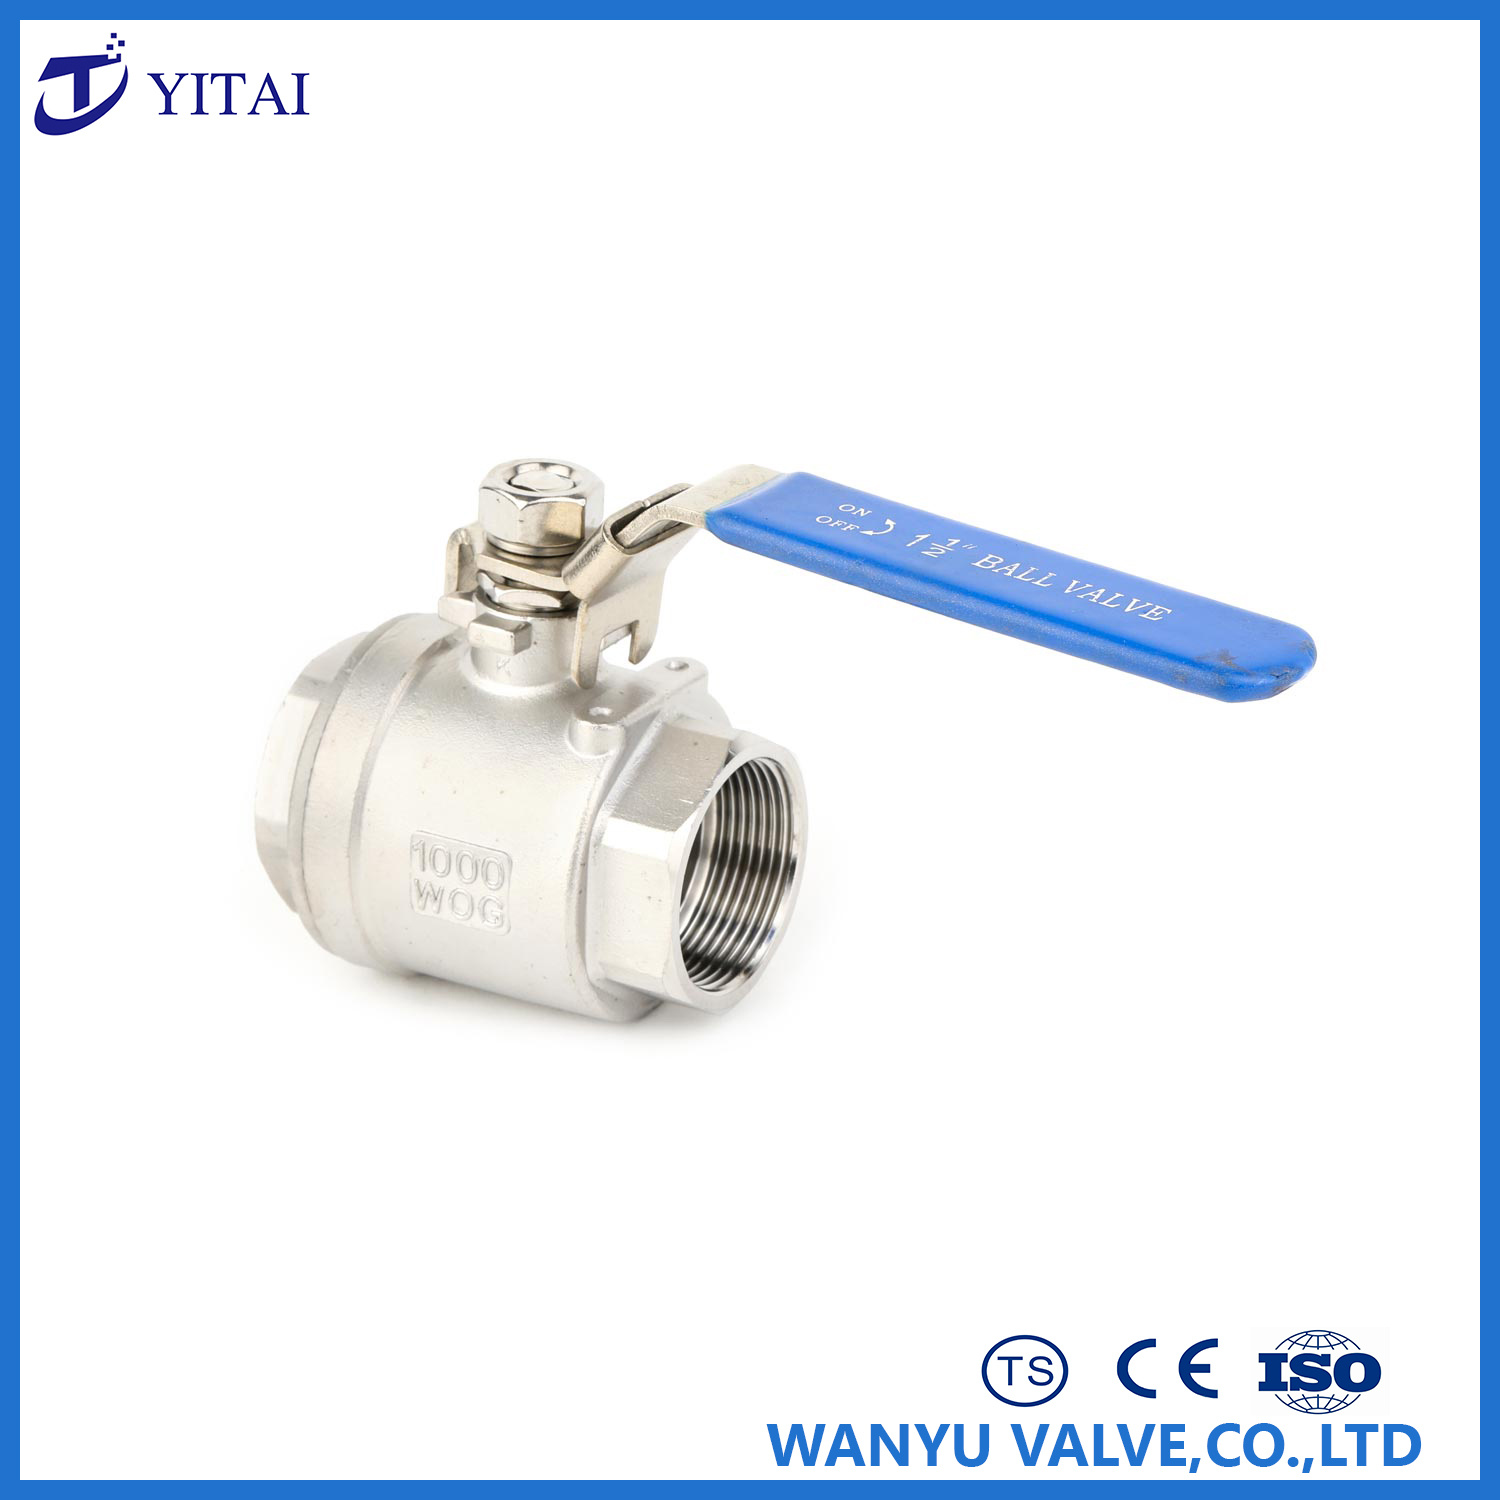 Full Port Stainless Steel Floating 2PC Thread Ball Valve (1000psi) with Lock pictures & photos